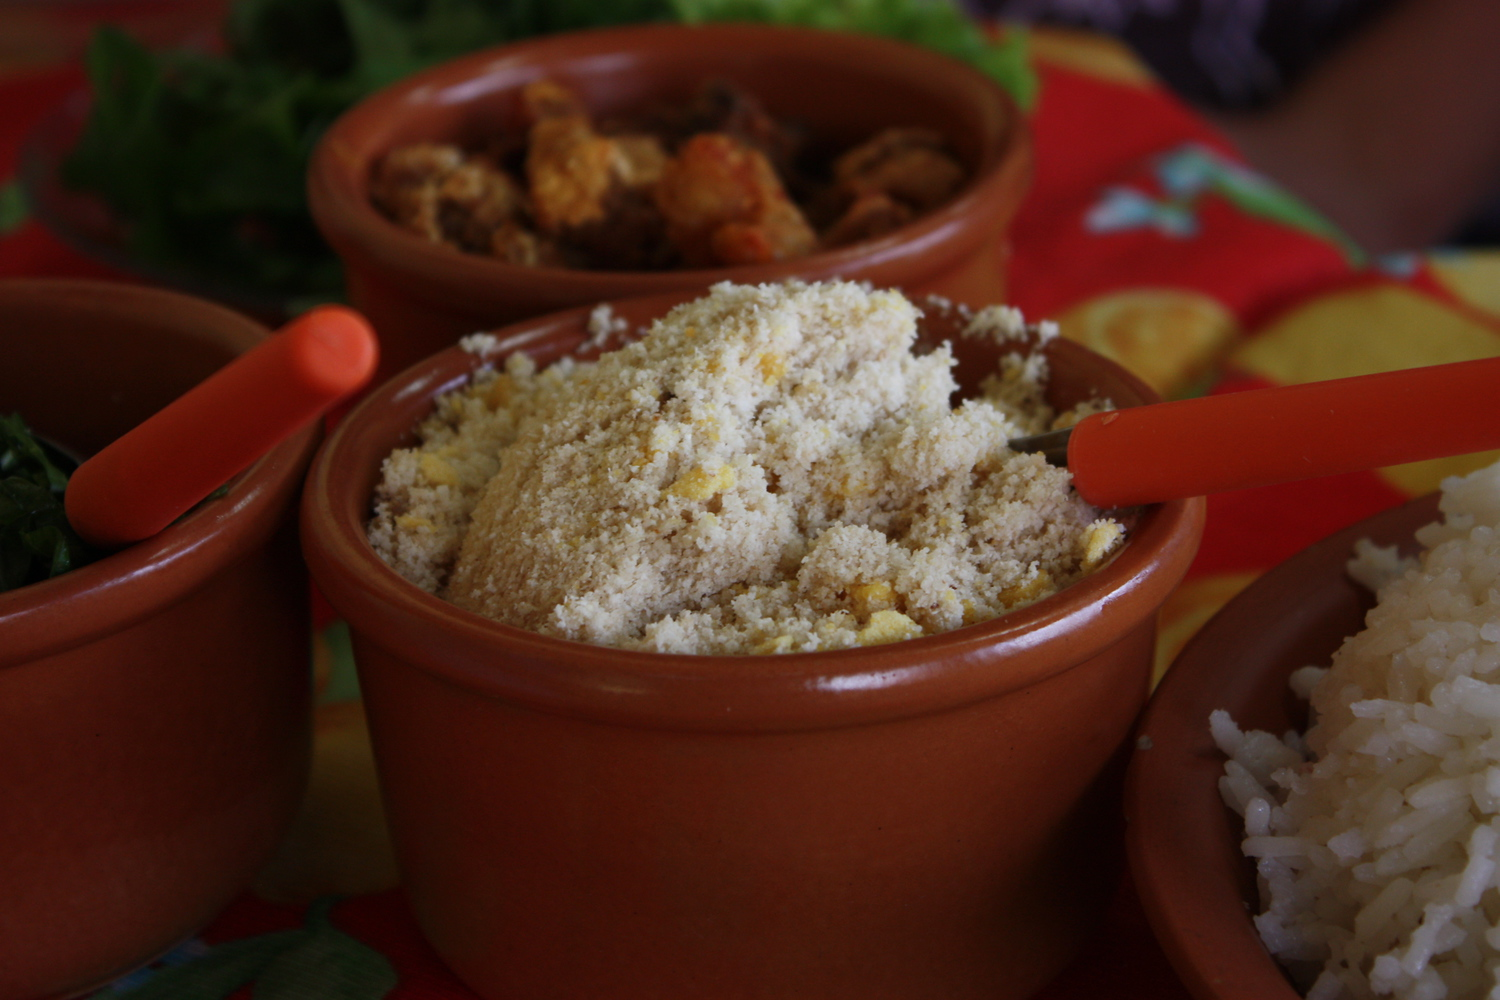 Farofa in Brazilian cuisine is one of 23 foods to eat, check out the others.